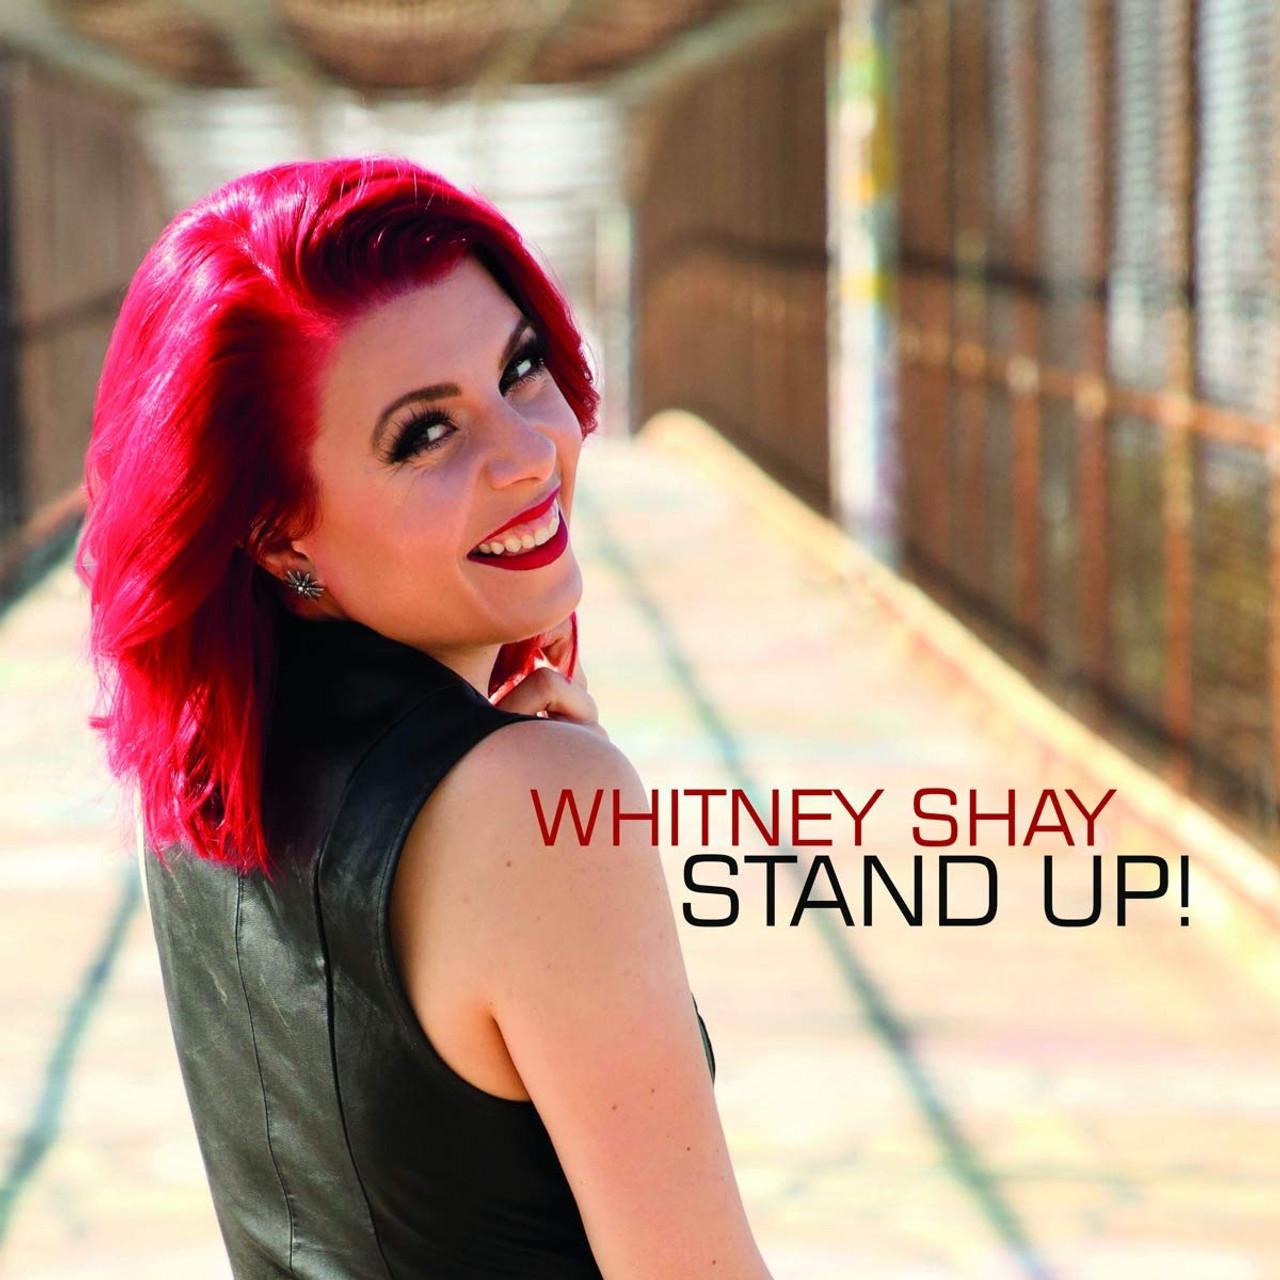 WHITNEY SHAY - STAND UP !